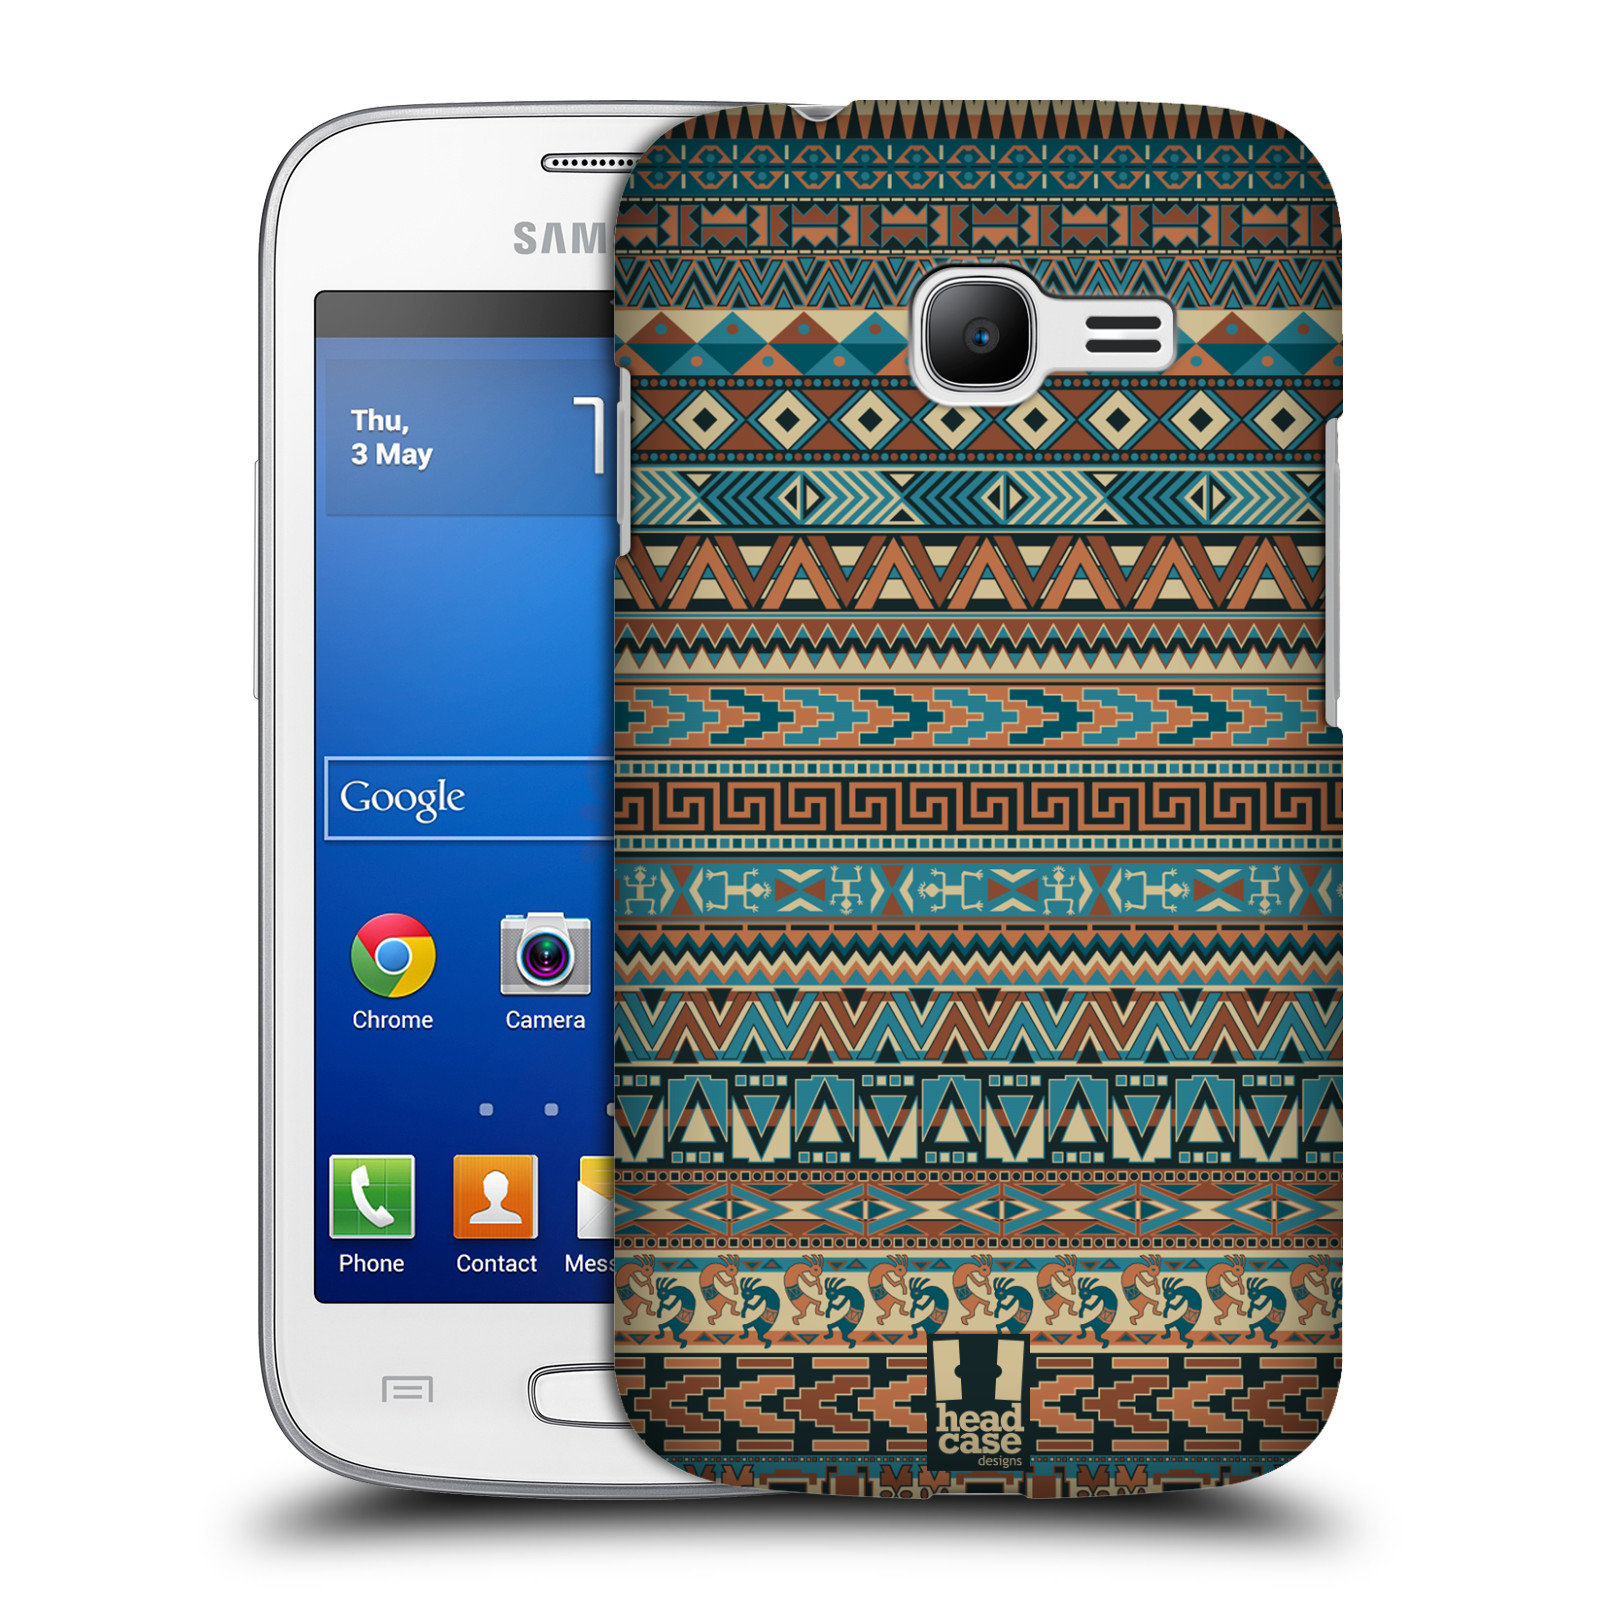 HEAD CASE DESIGNS AMERINDIAN CASE COVER FOR SAMSUNG GALAXY STAR PRO S7260 S7262